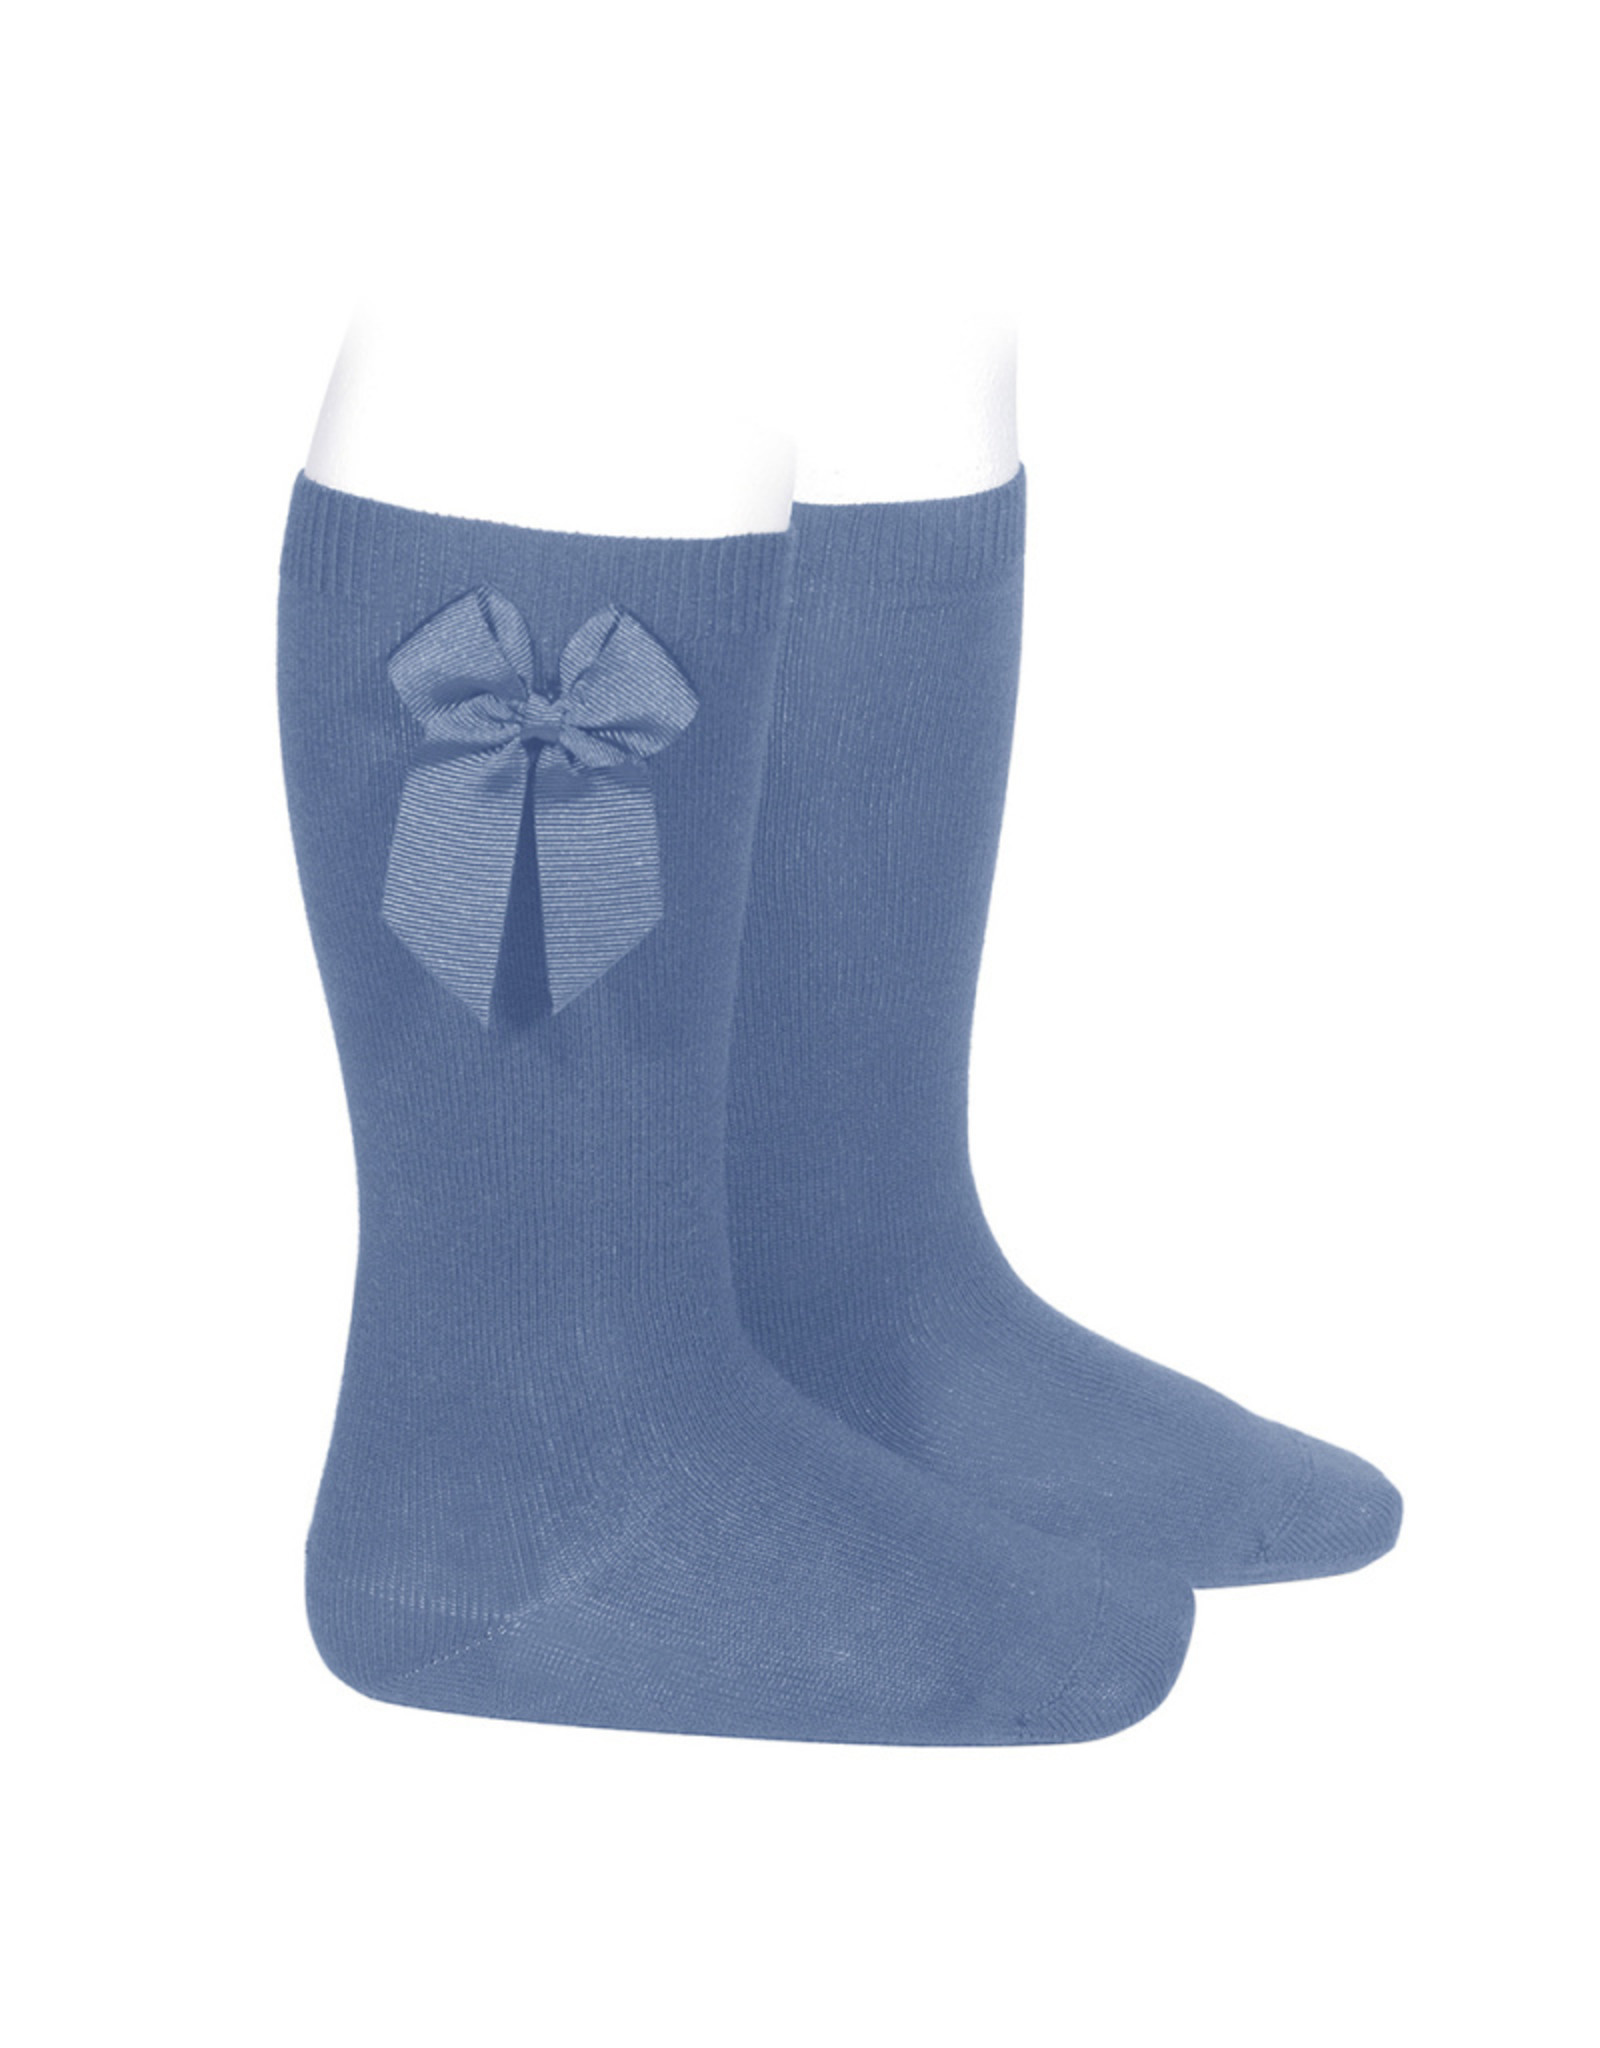 CONDOR French Blue Knee Socks  with Bow